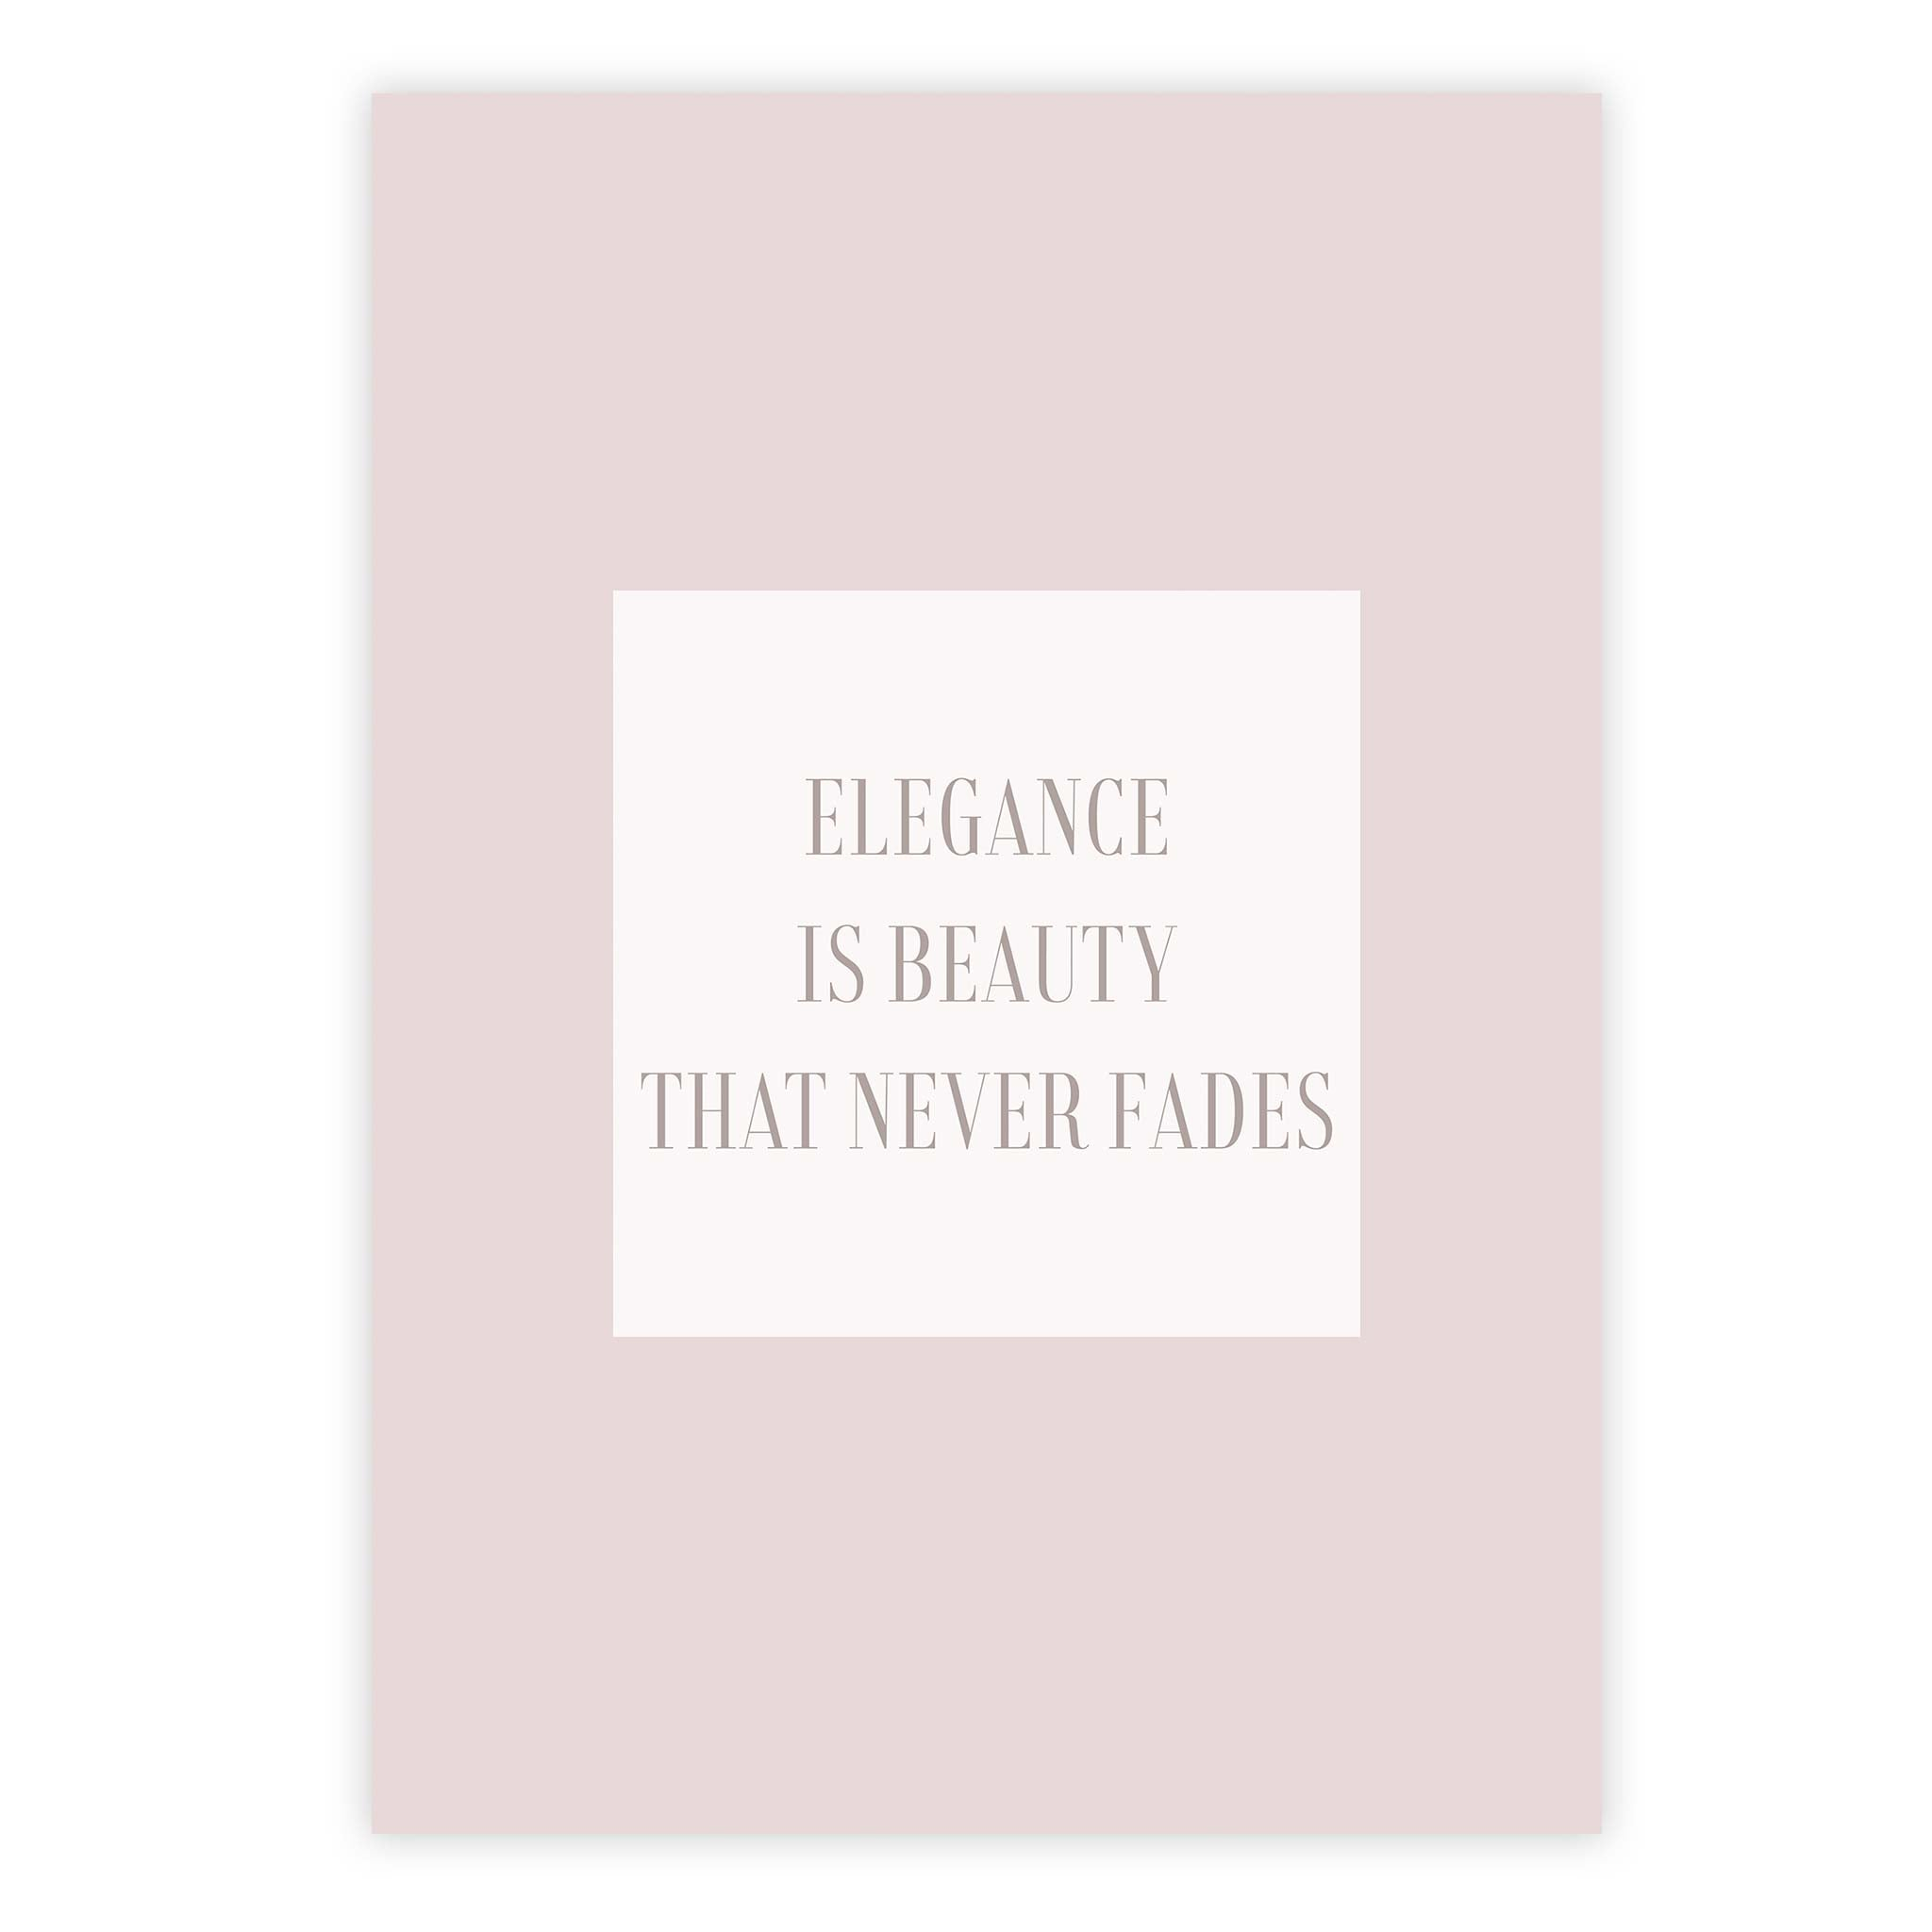 Elegance is beauty that never fades